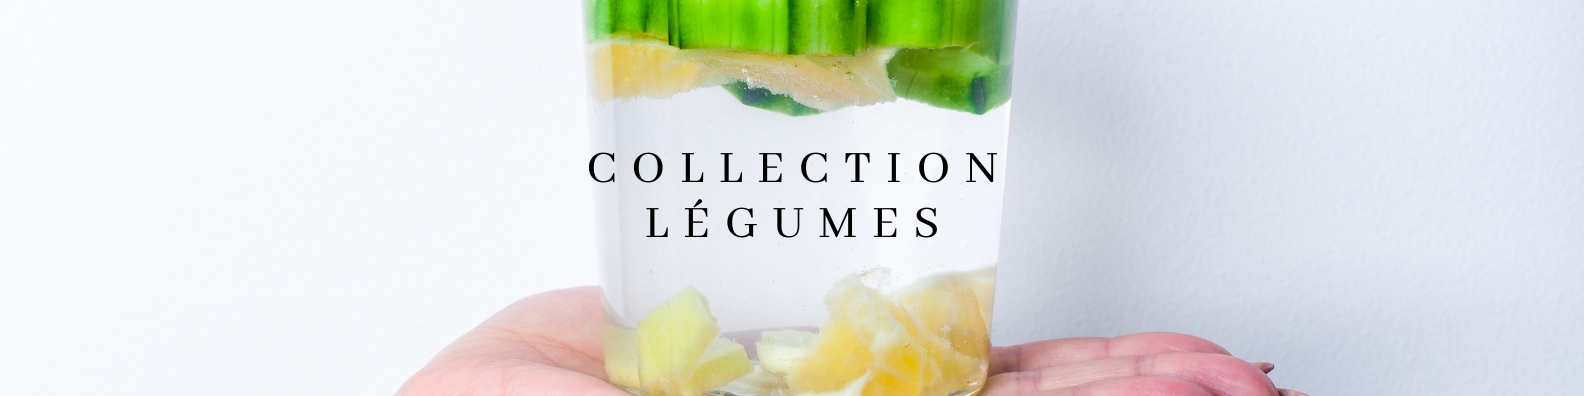 Collection_legumes_.png